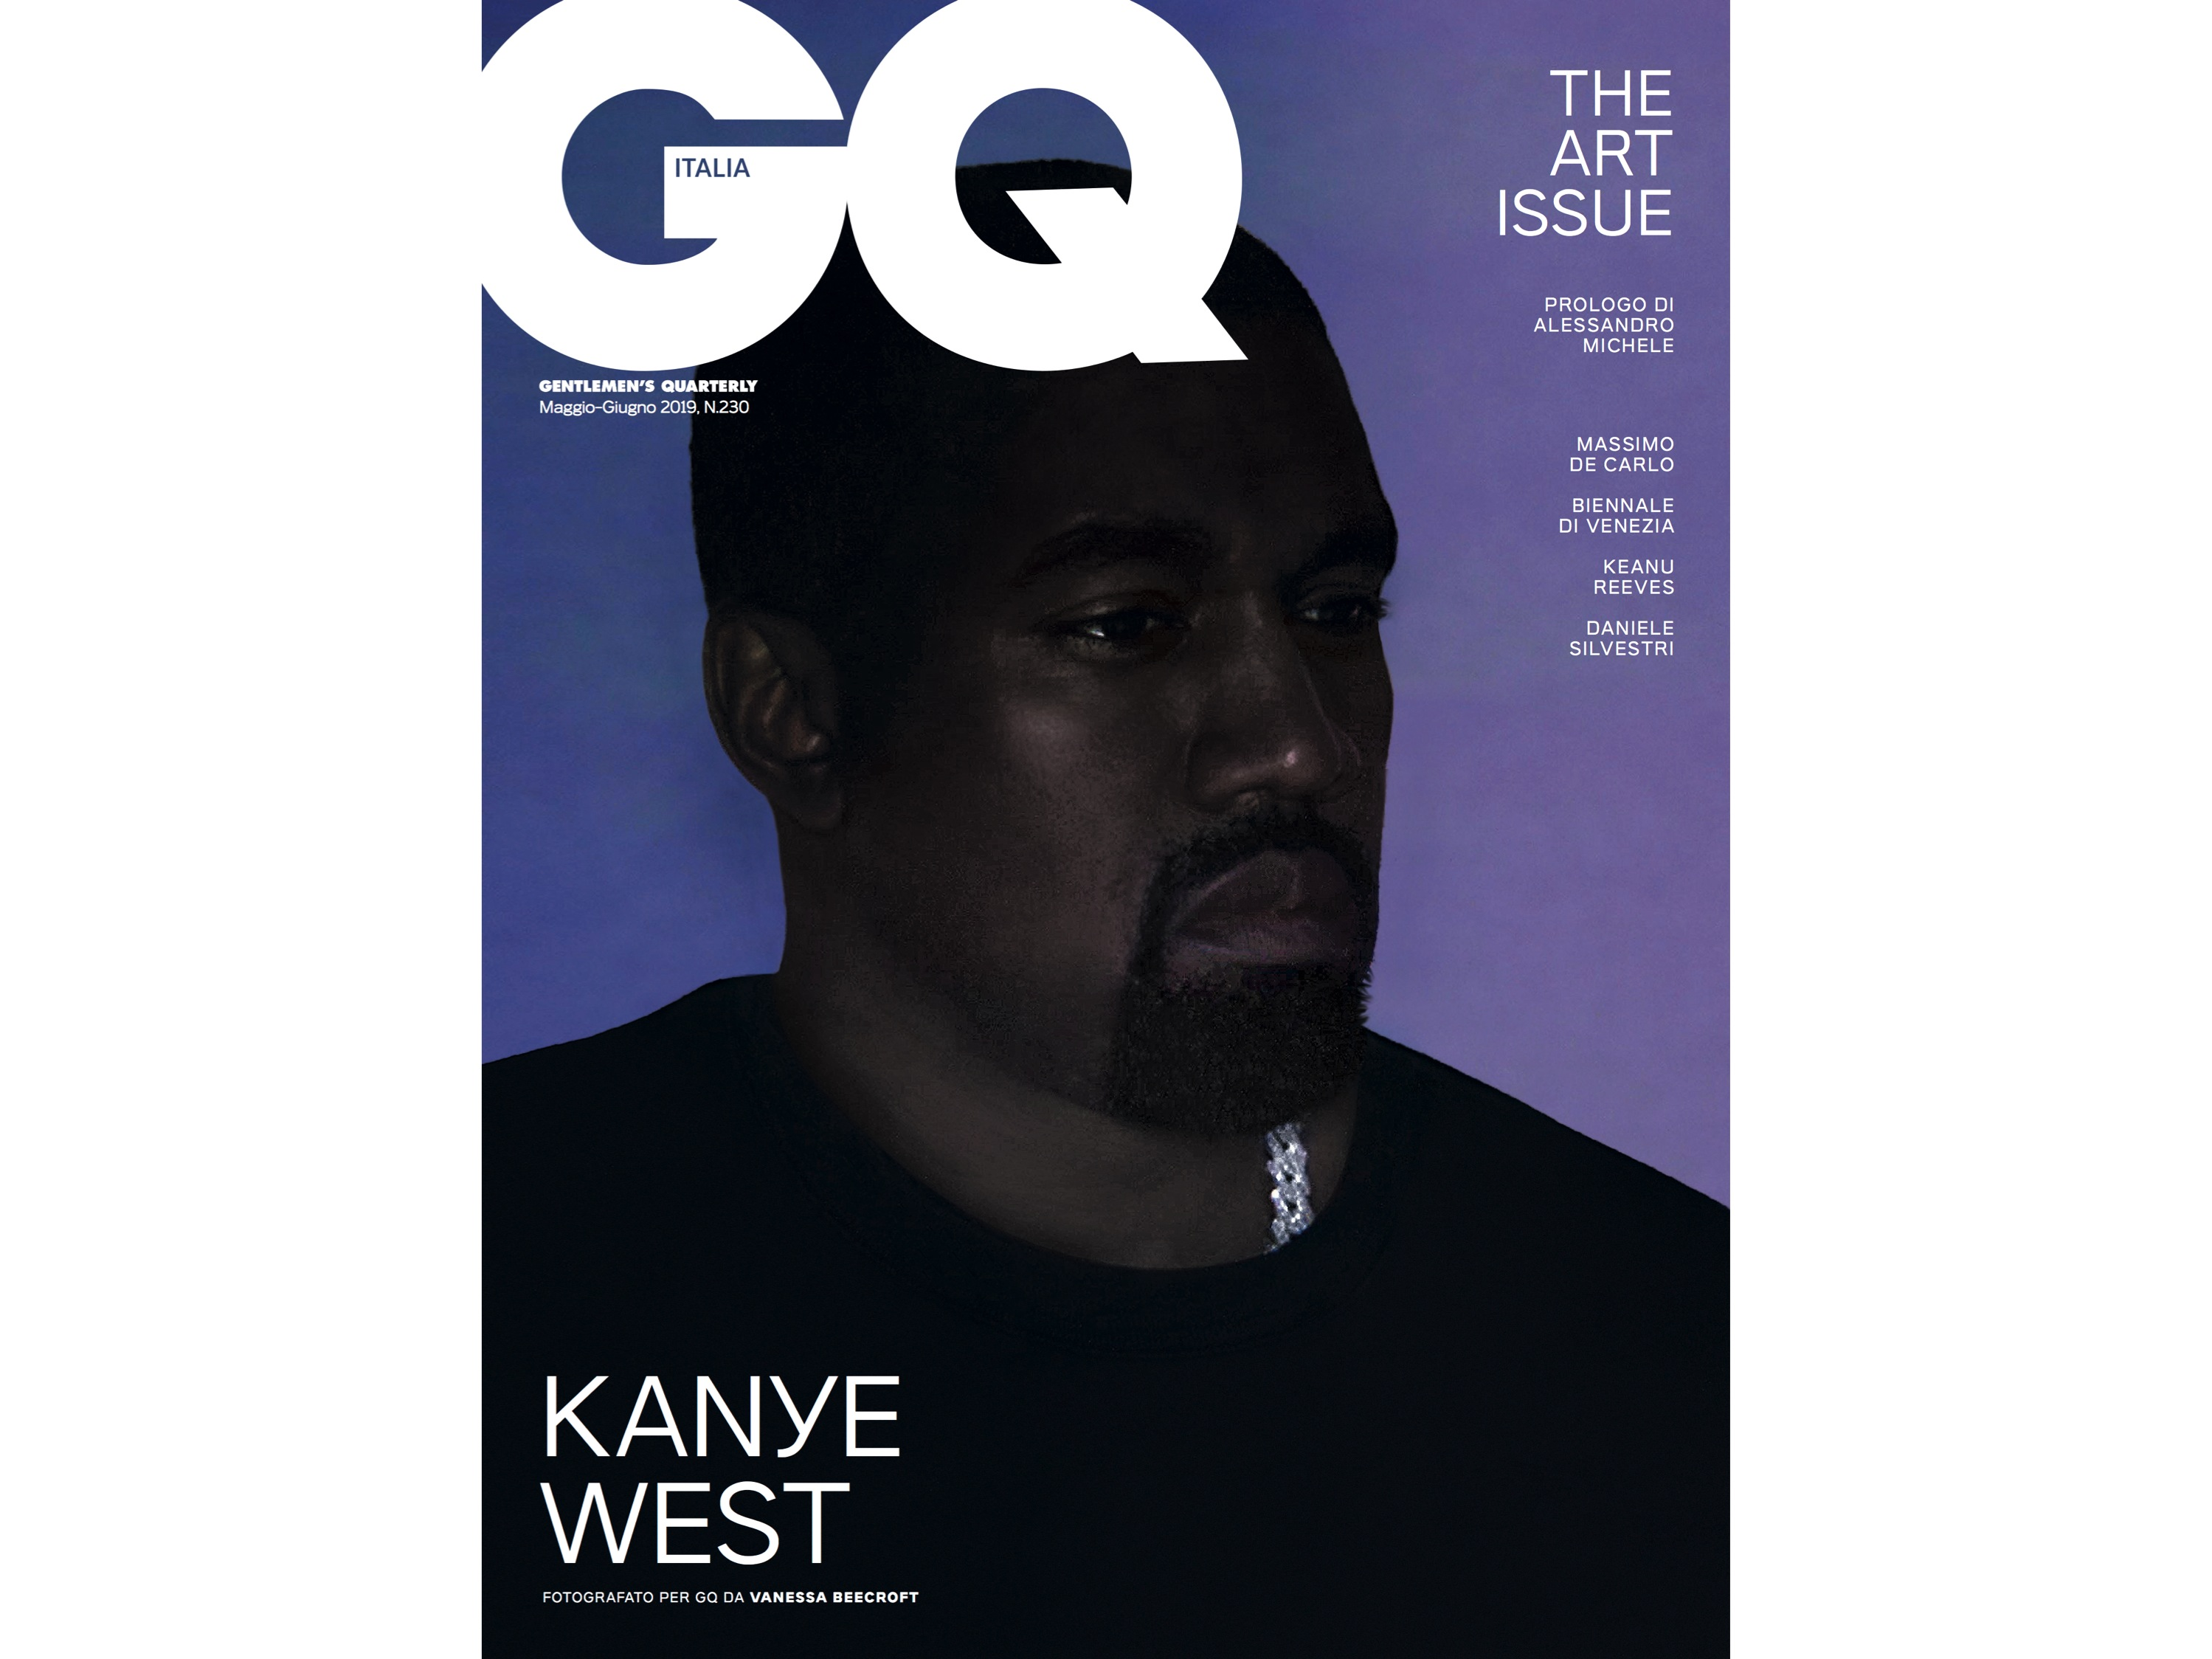 Kanye West shot by Vanessa Beecroft for GQ Italia